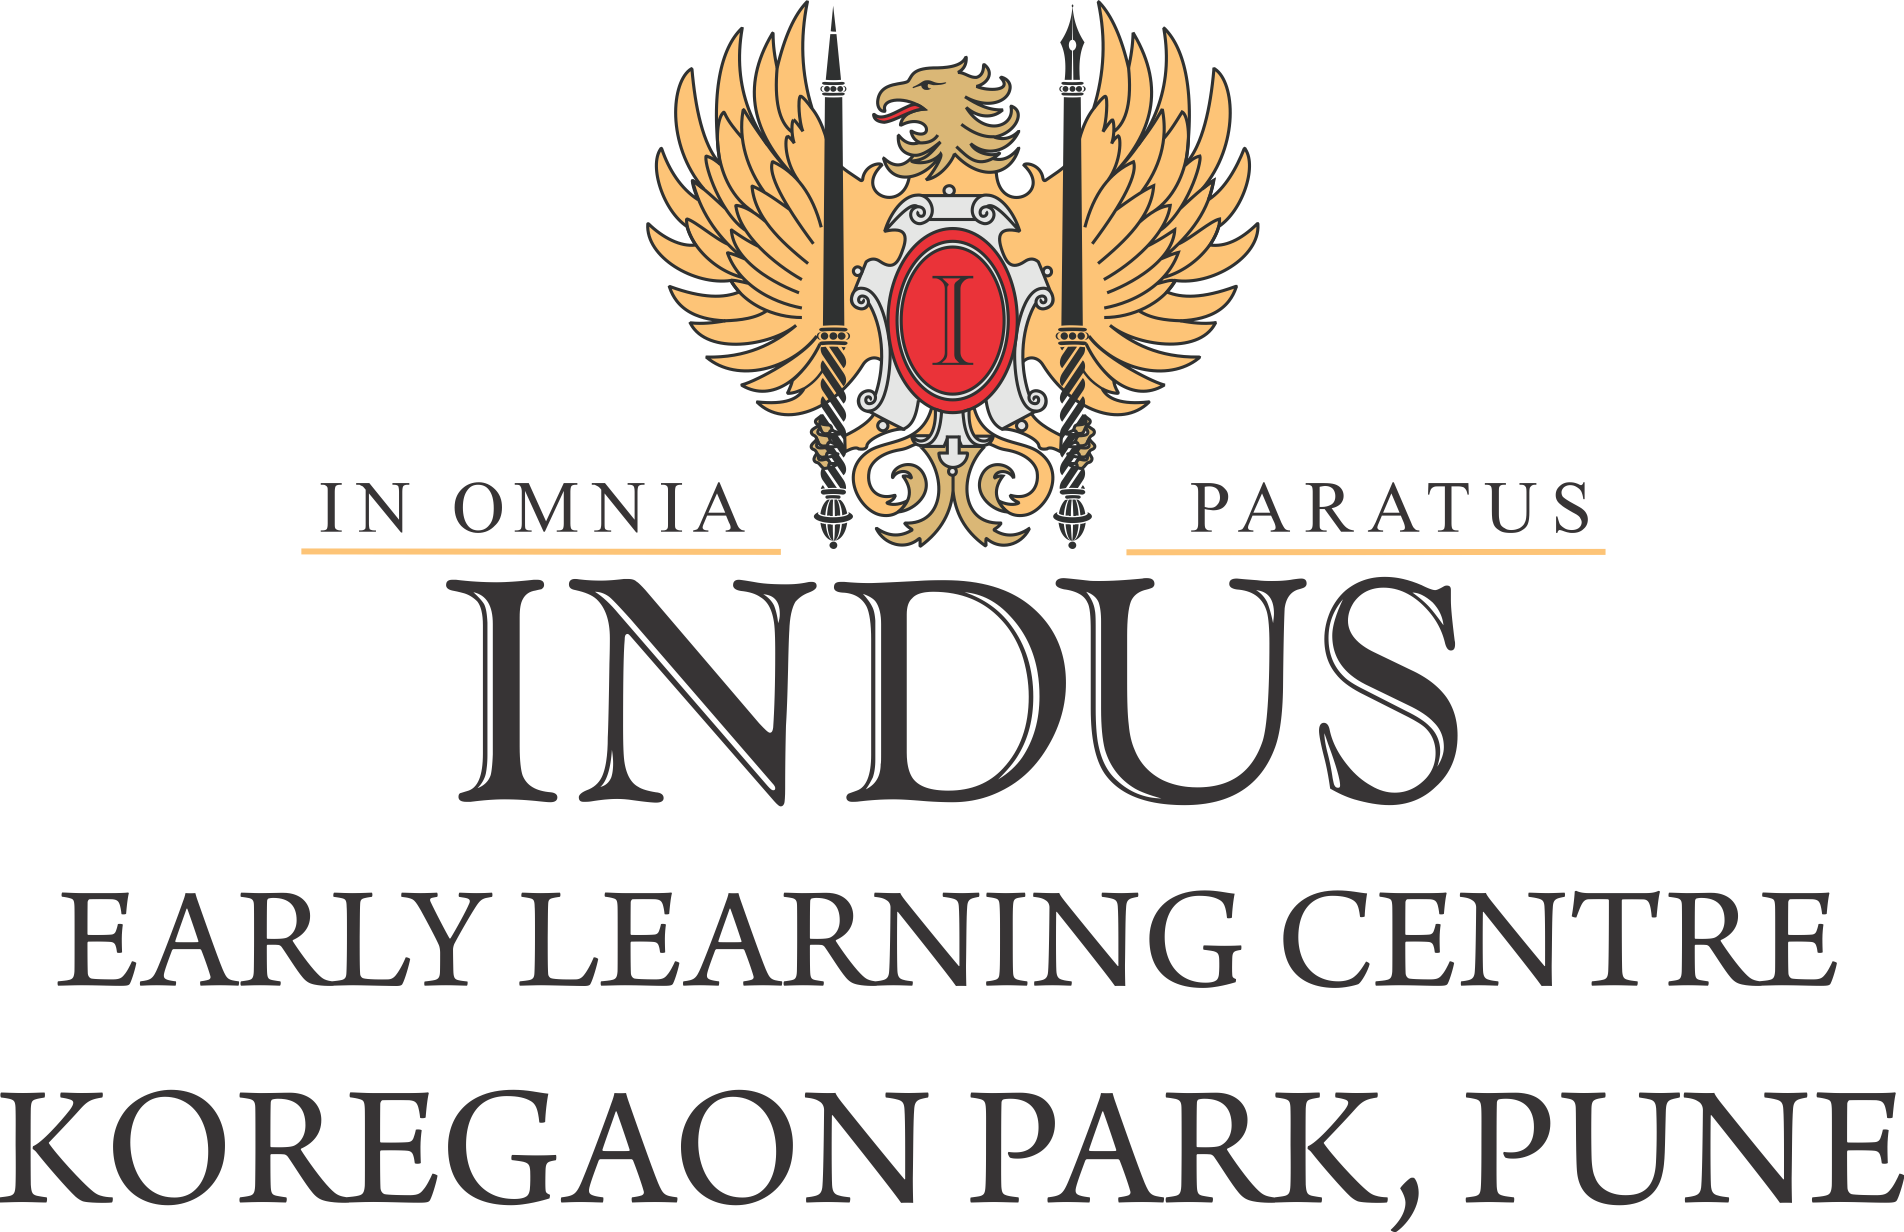 Indus Early Learning Centre - Koregaon Park - Pune Image